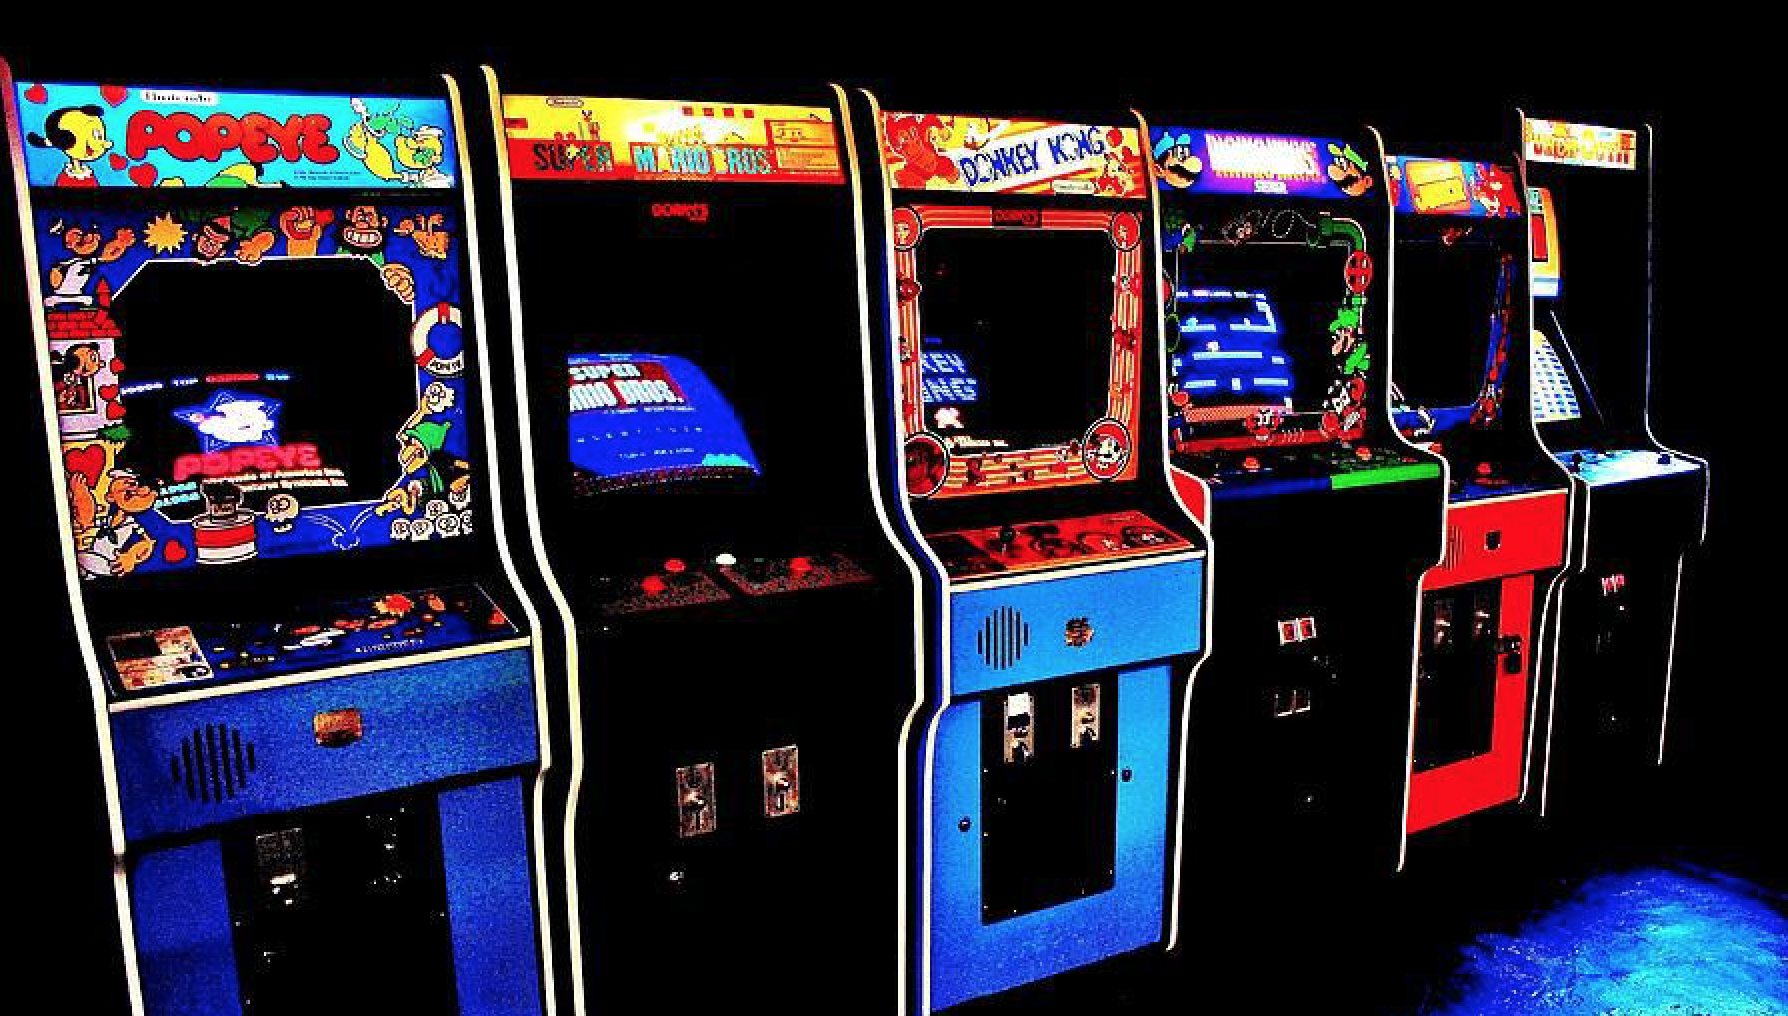 Adult arcade video games